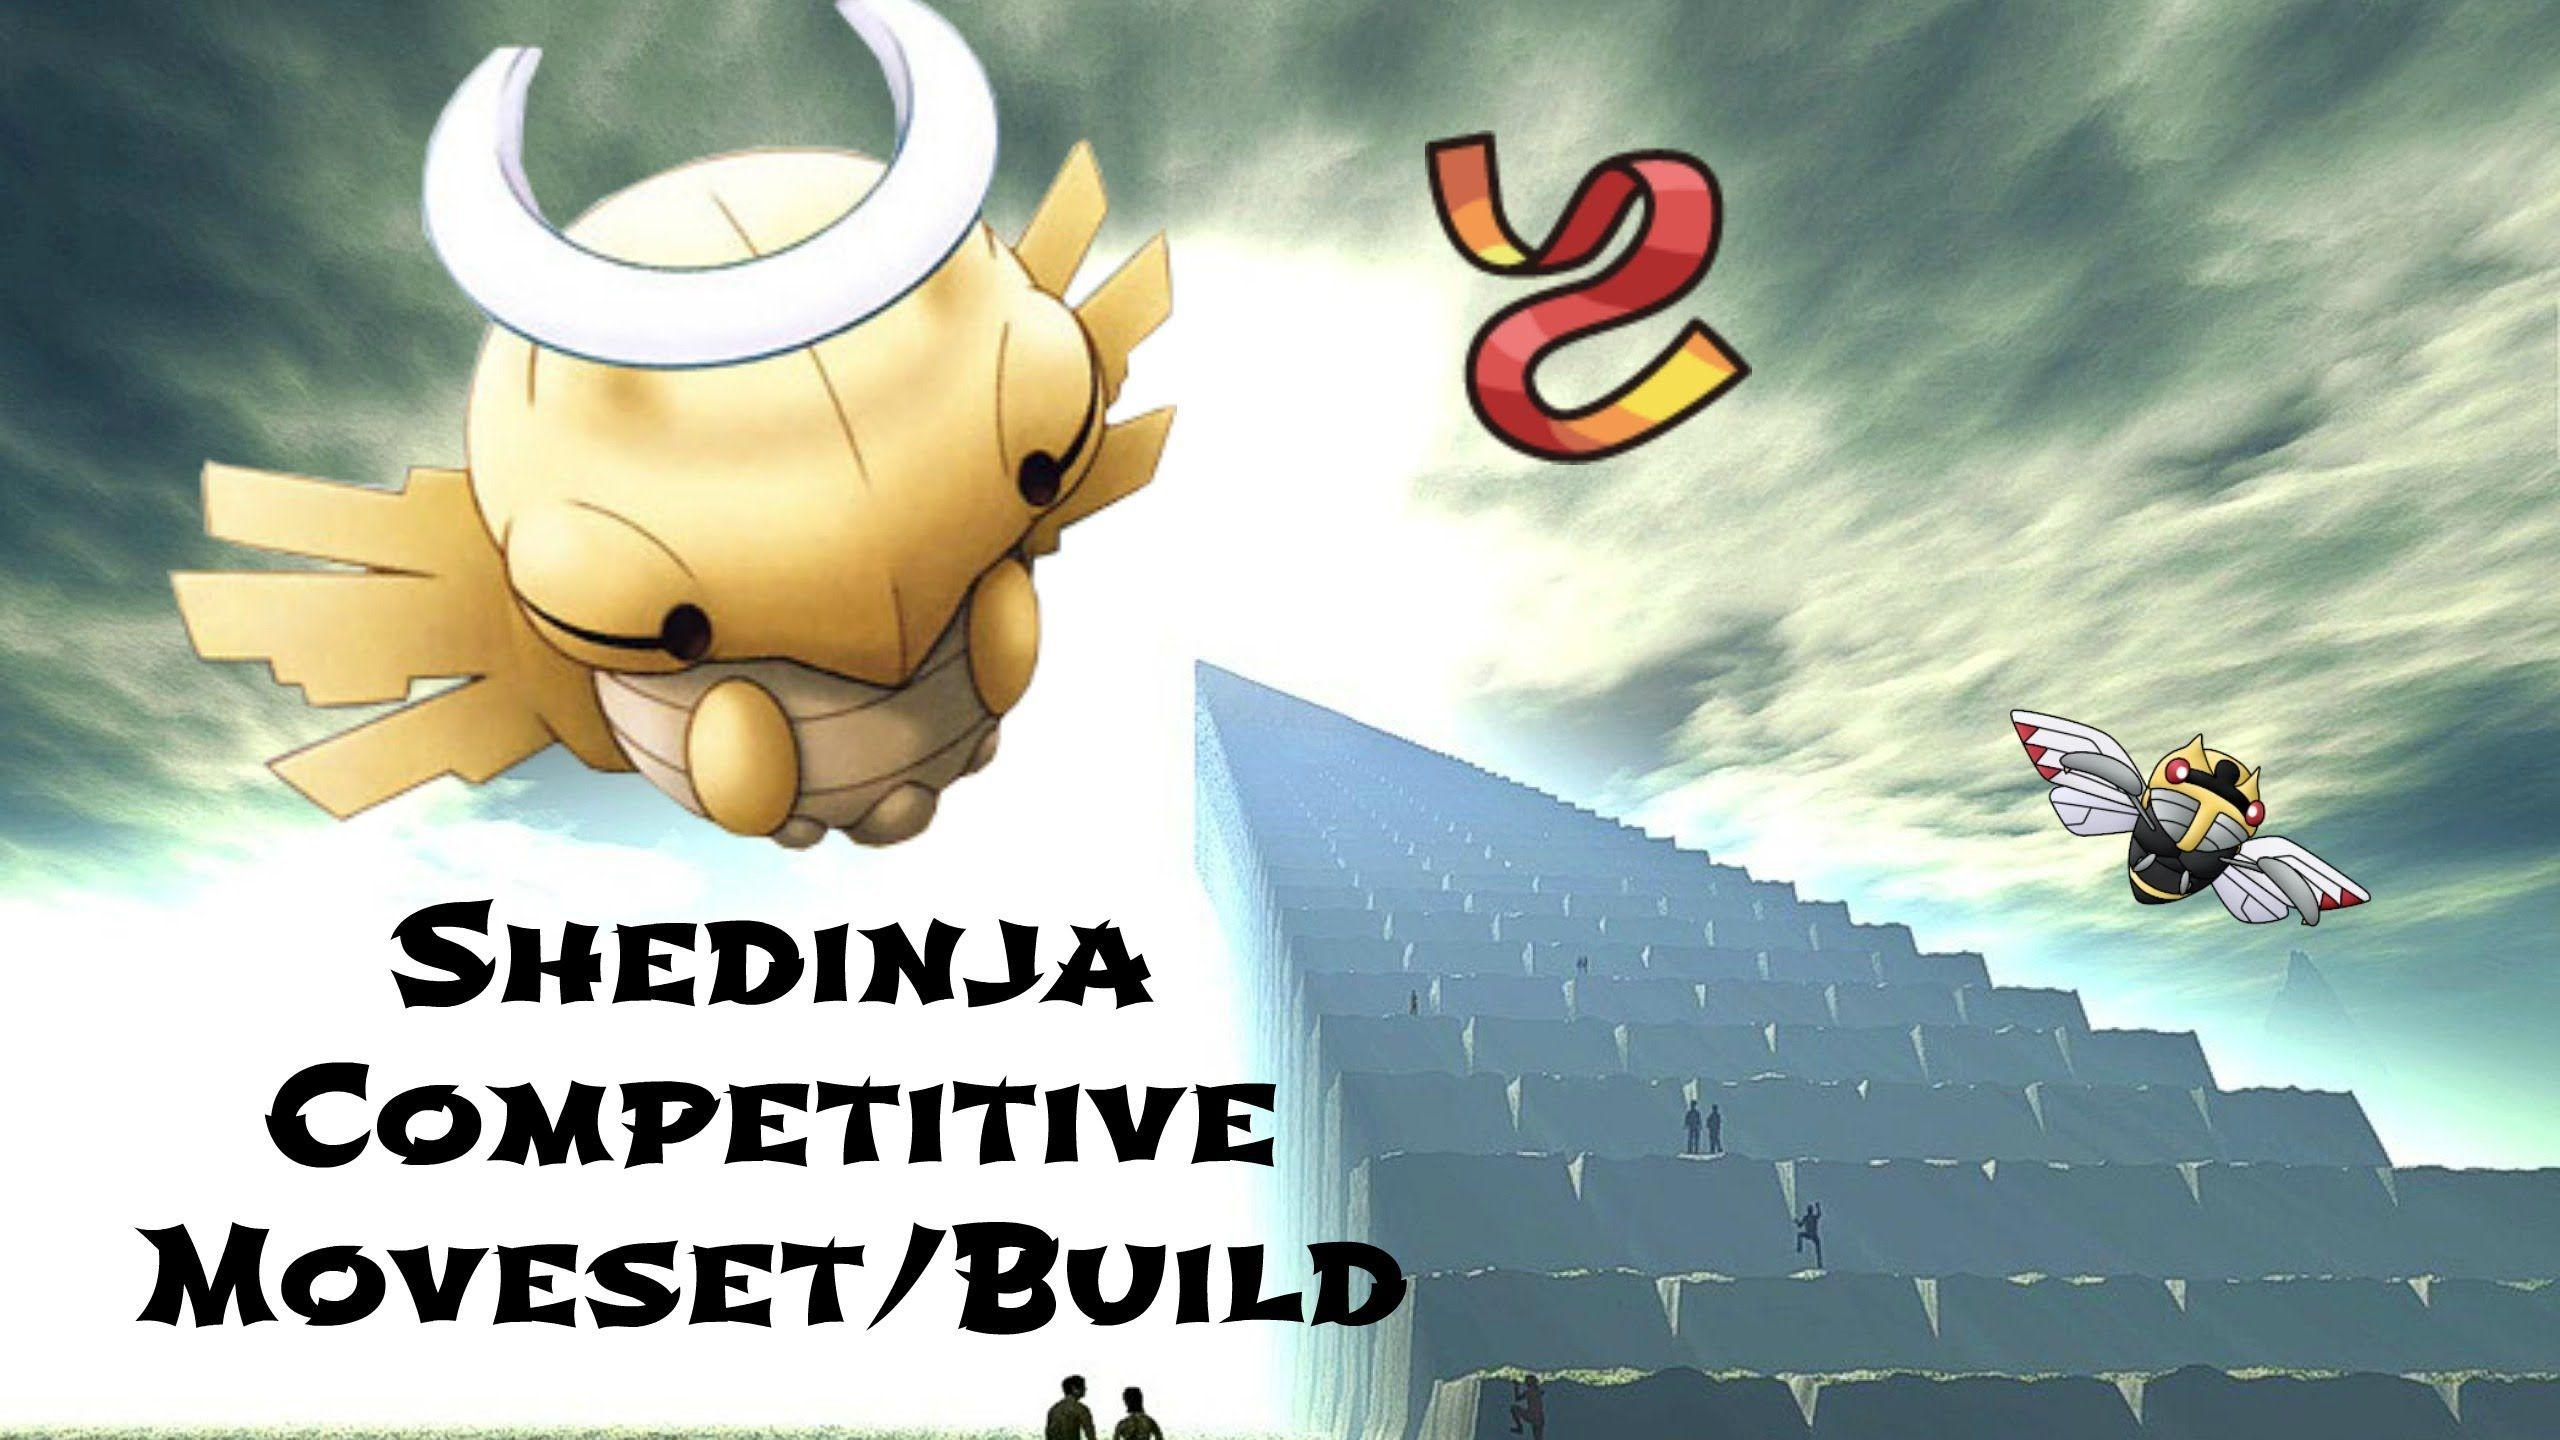 Shedinja Pokemon XY Competitive Moveset/Build! - Wonder Sash! - YouTube